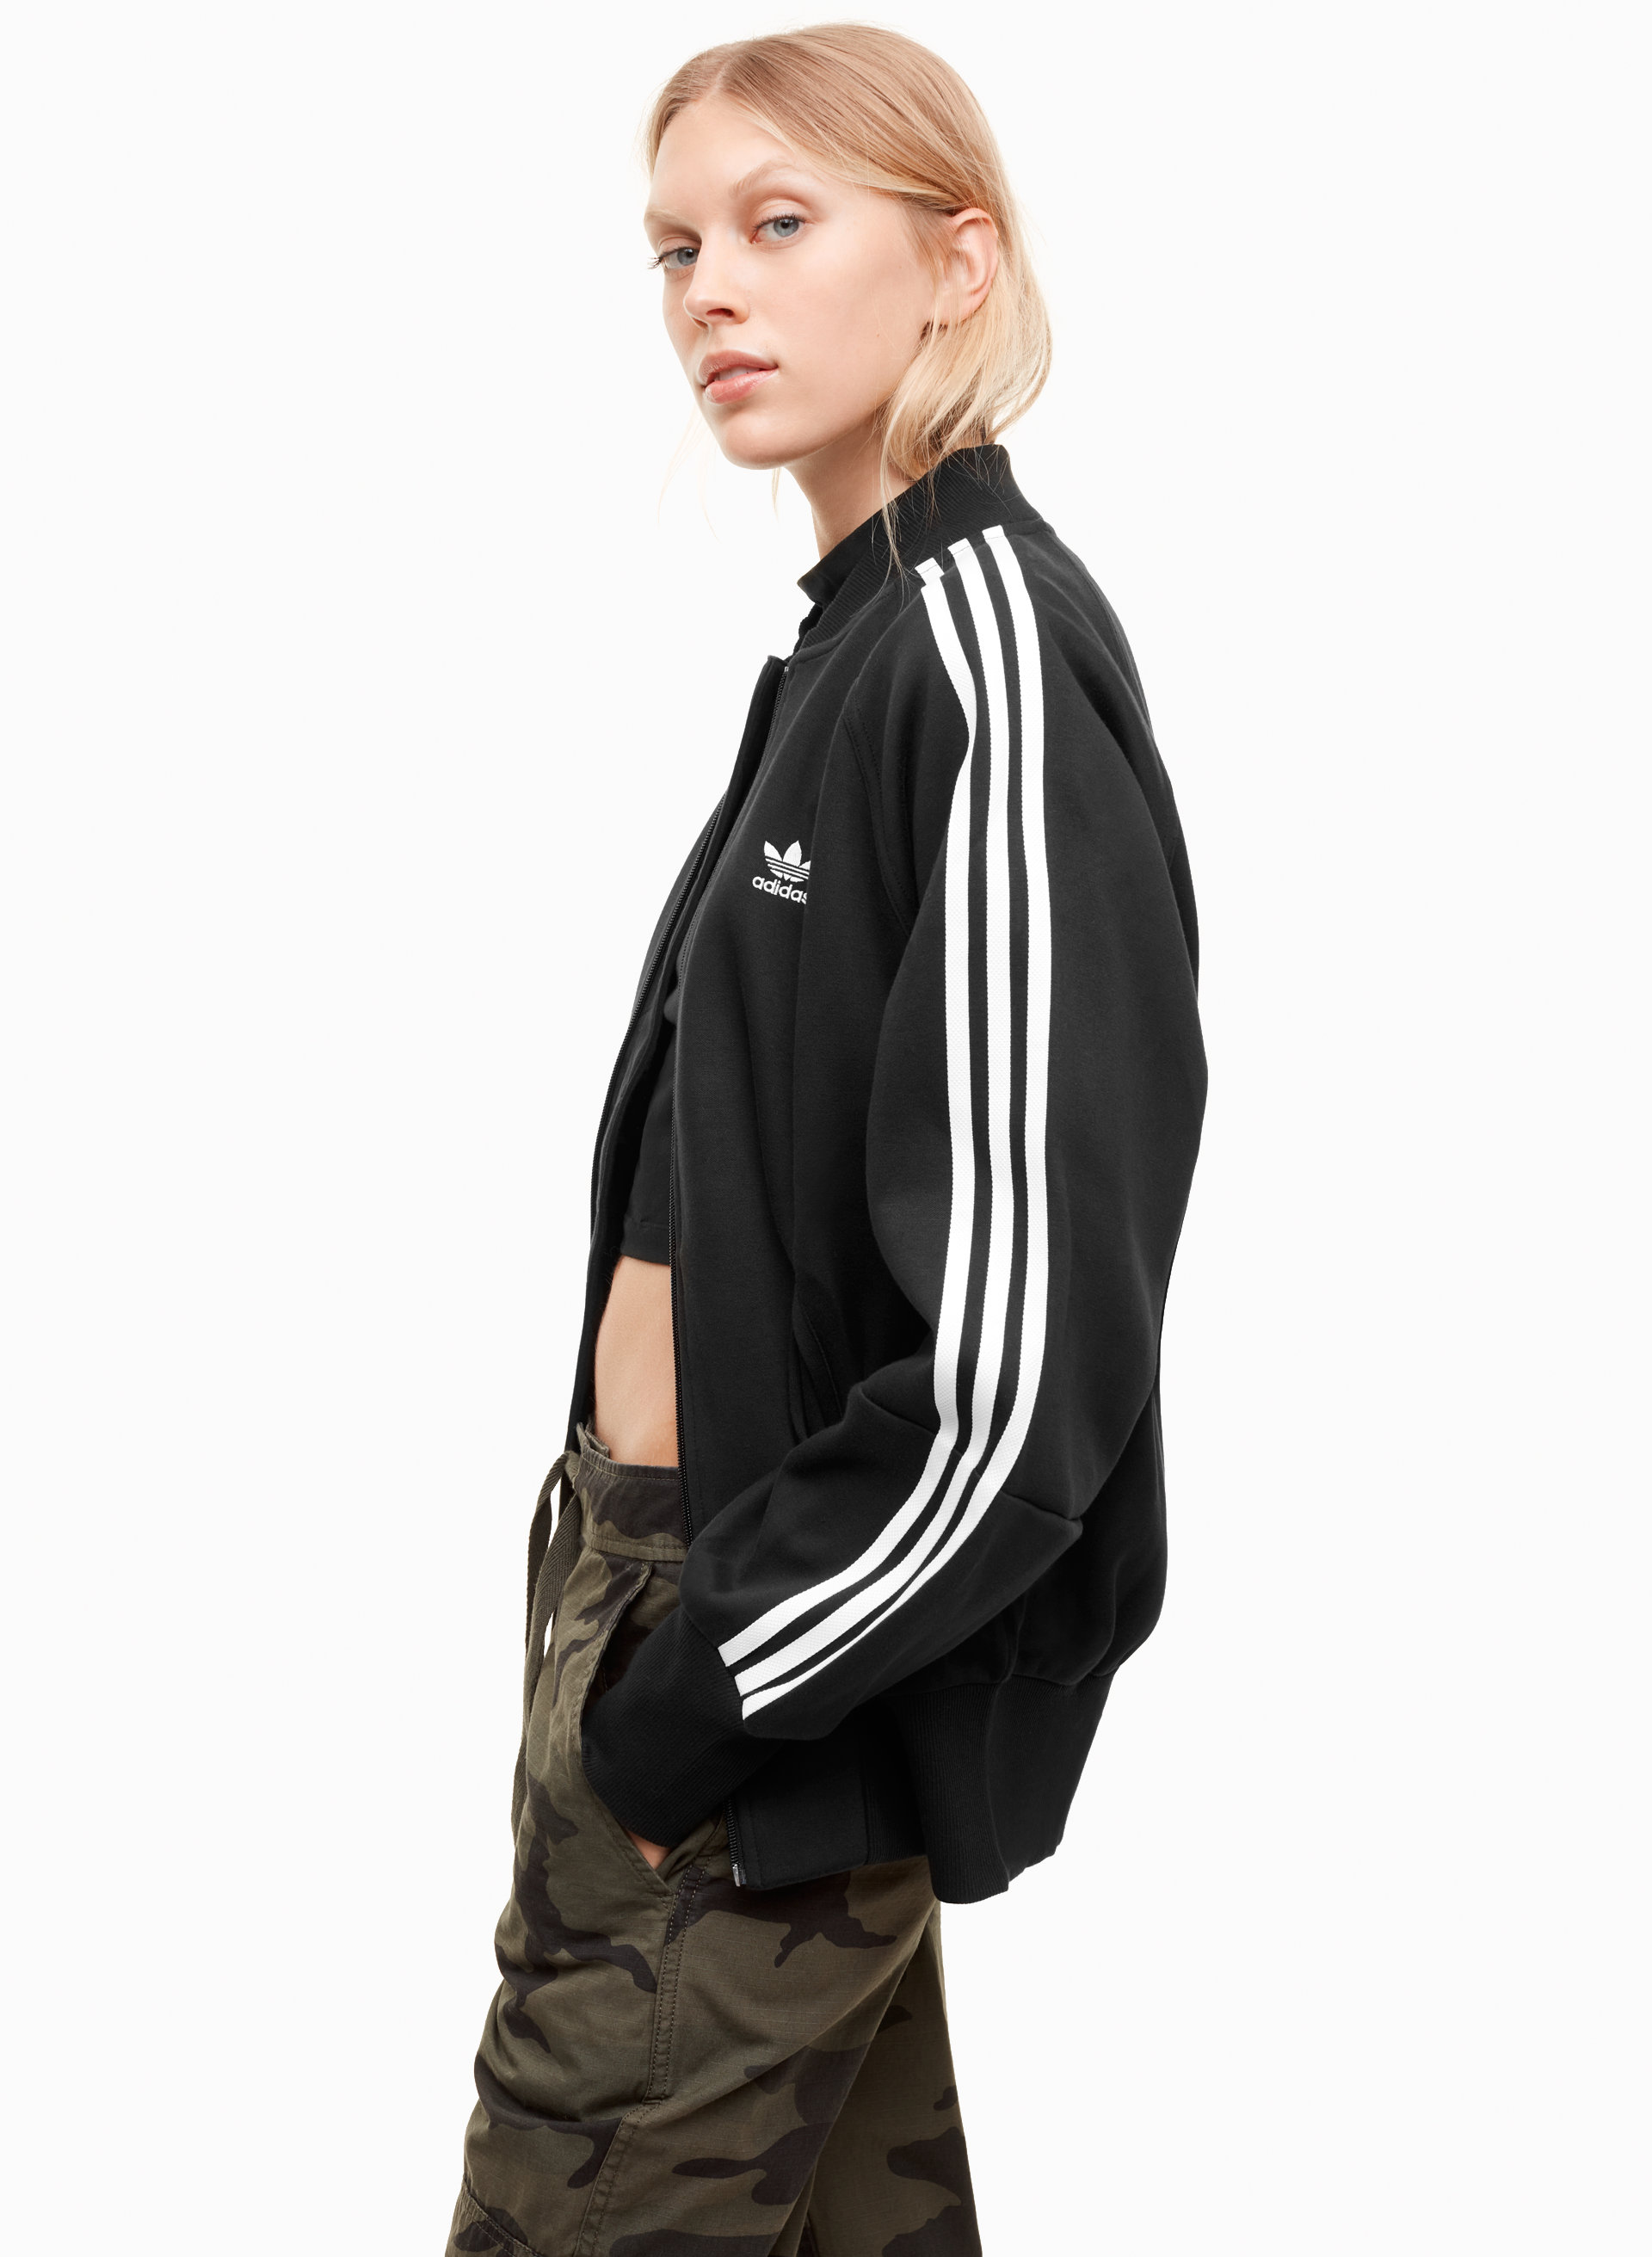 100% authentic a46dd f746e adidas 3 STRIPES TRACK TOP   Aritzia ...